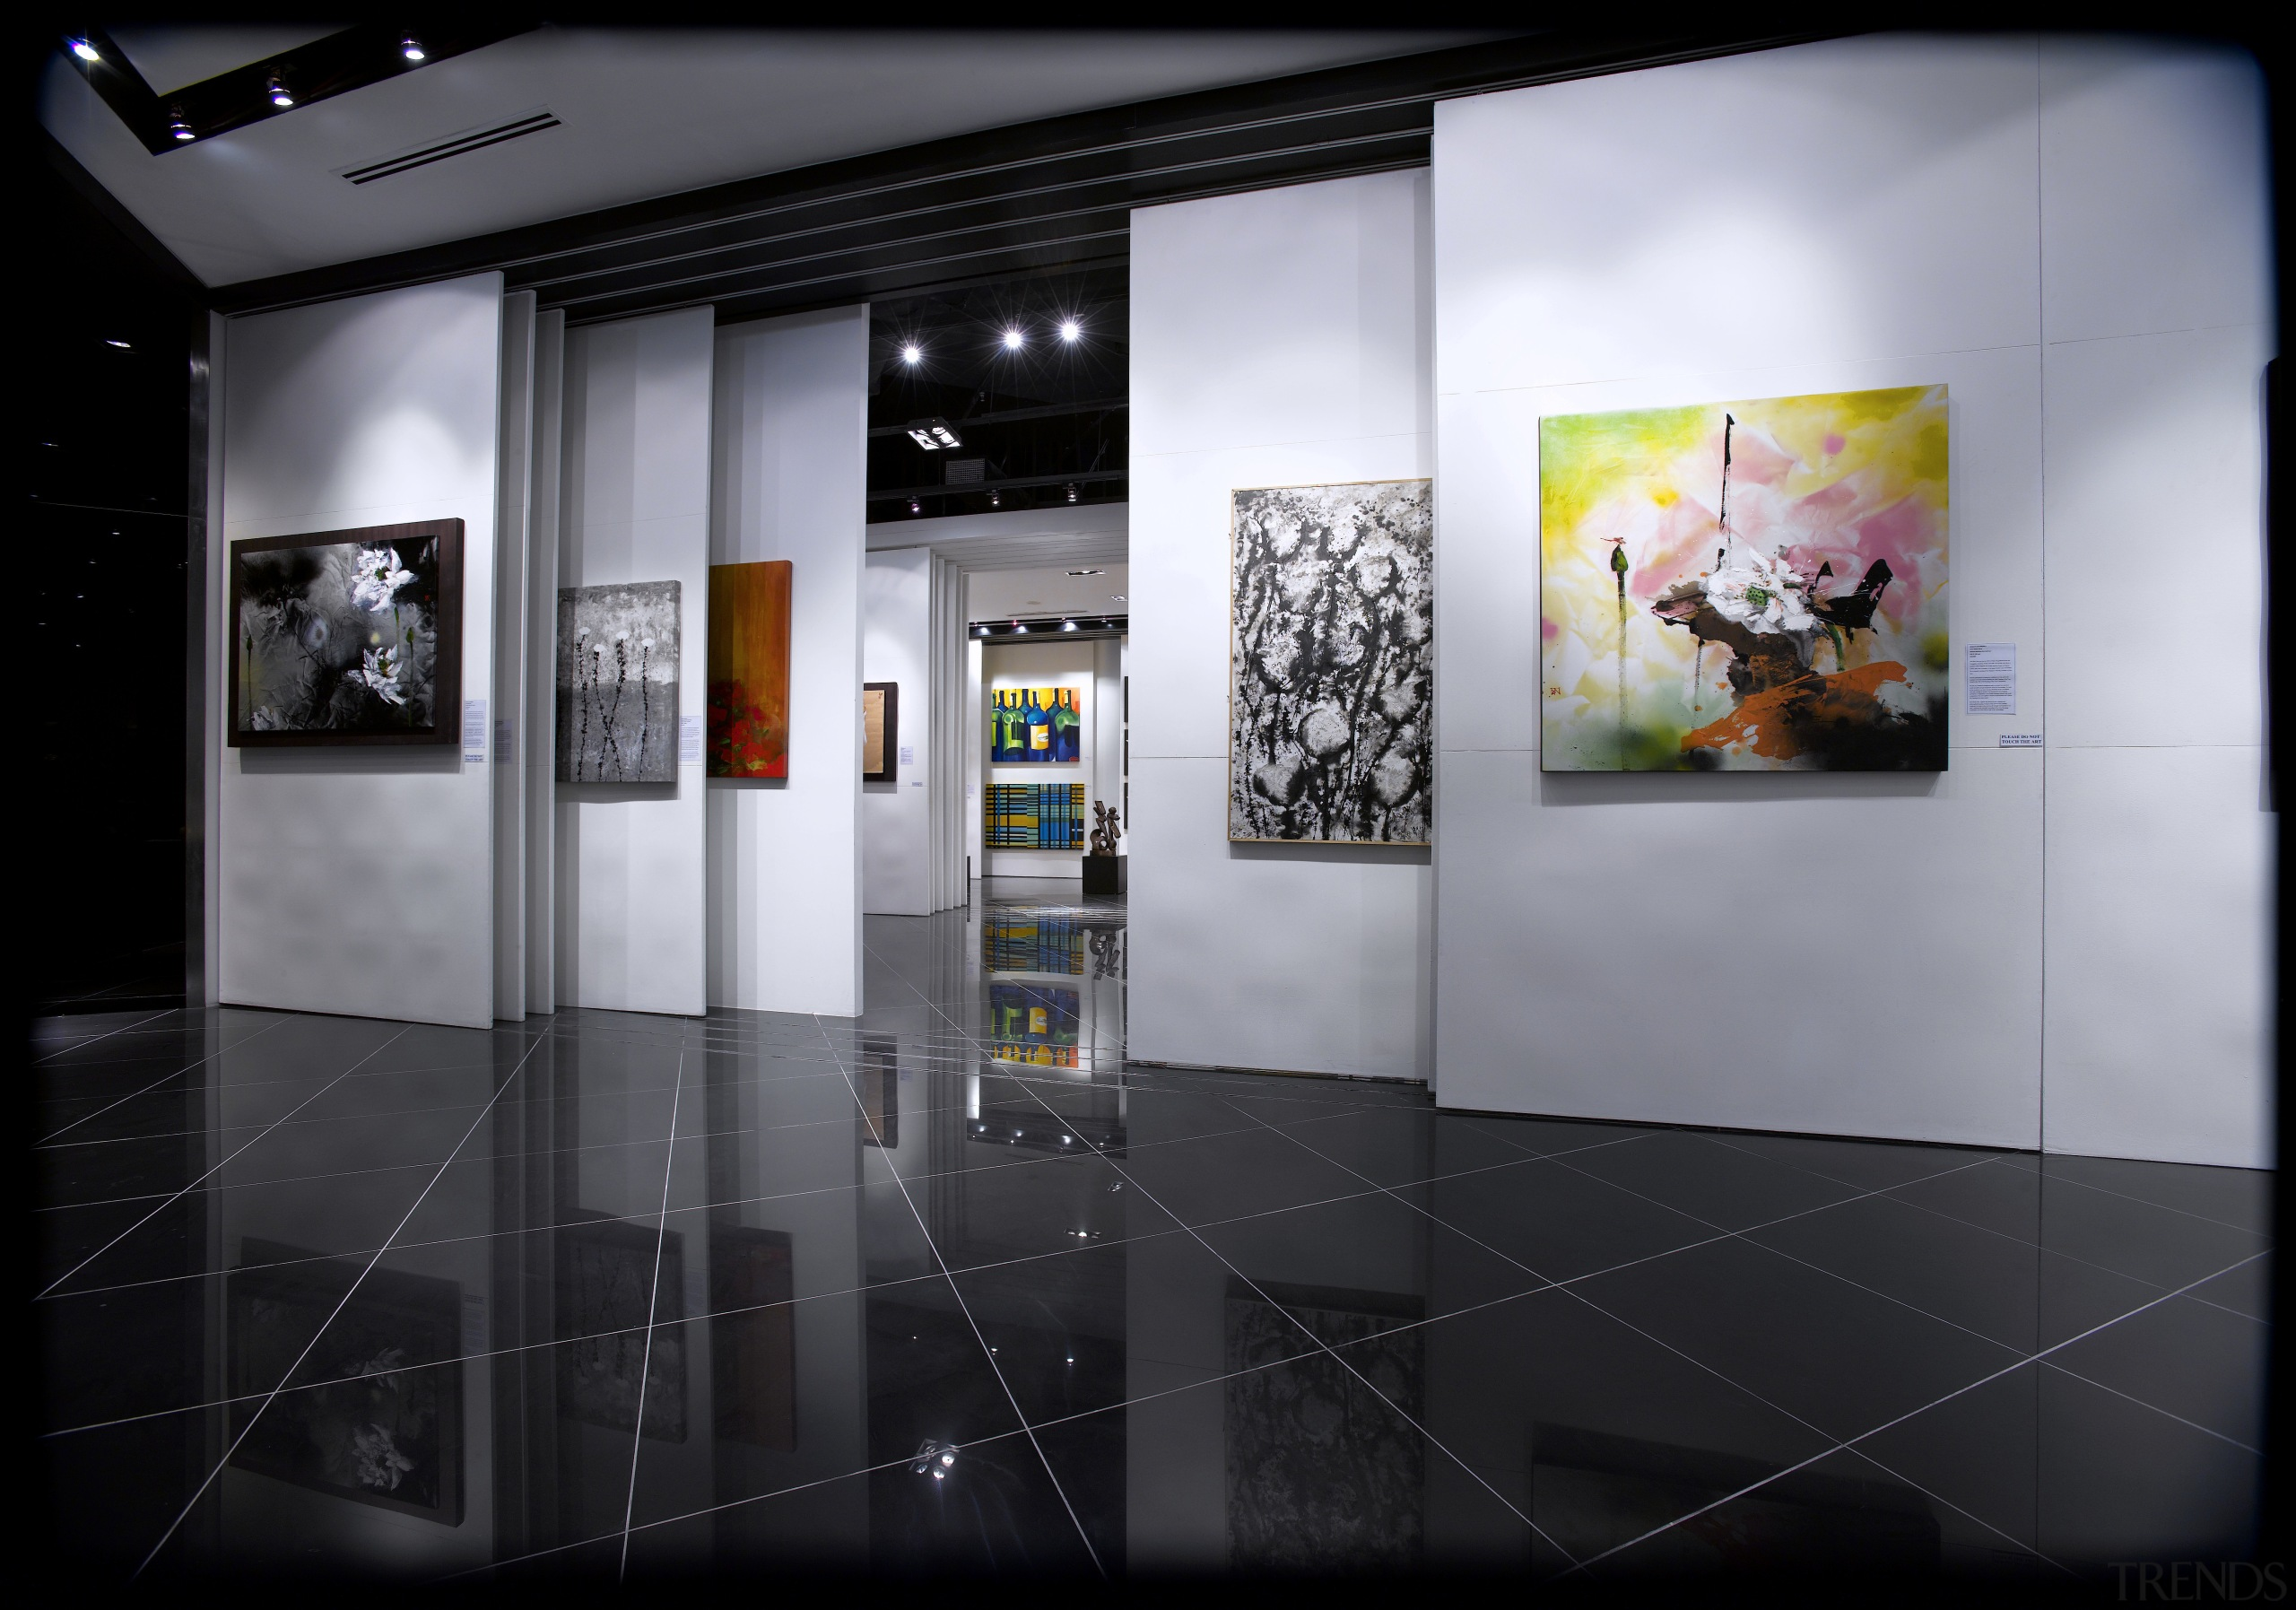 Interior view of the Art Gallery by Designworx, art exhibition, art gallery, exhibition, black, gray